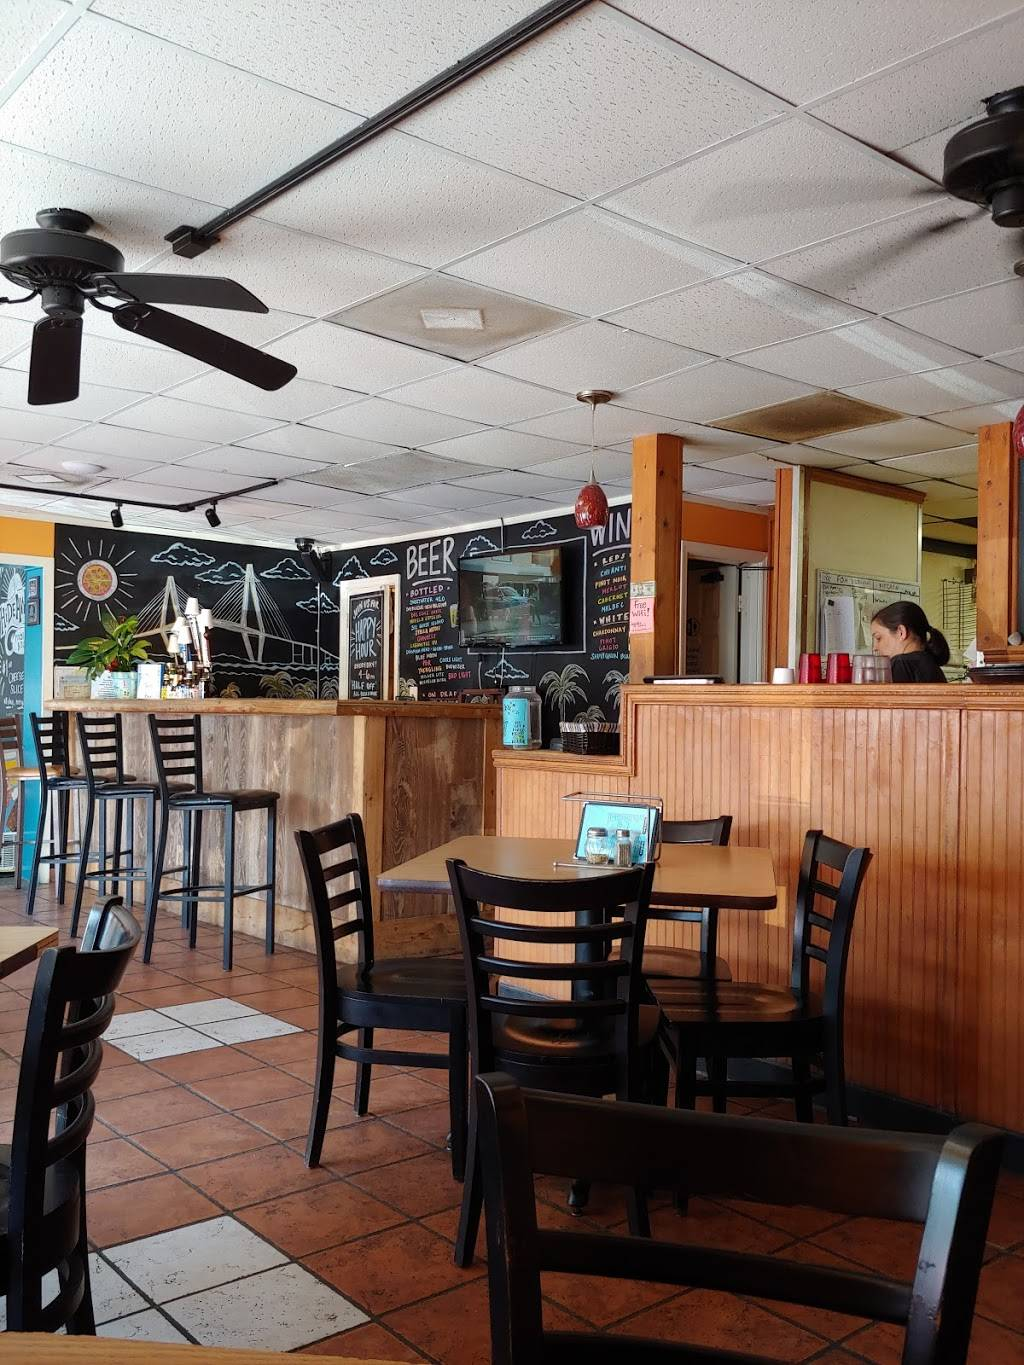 The Hideaway Pizza Kitchen | meal delivery | 5084, 608 Harbor View Rd, Charleston, SC 29412, USA | 8437622003 OR +1 843-762-2003